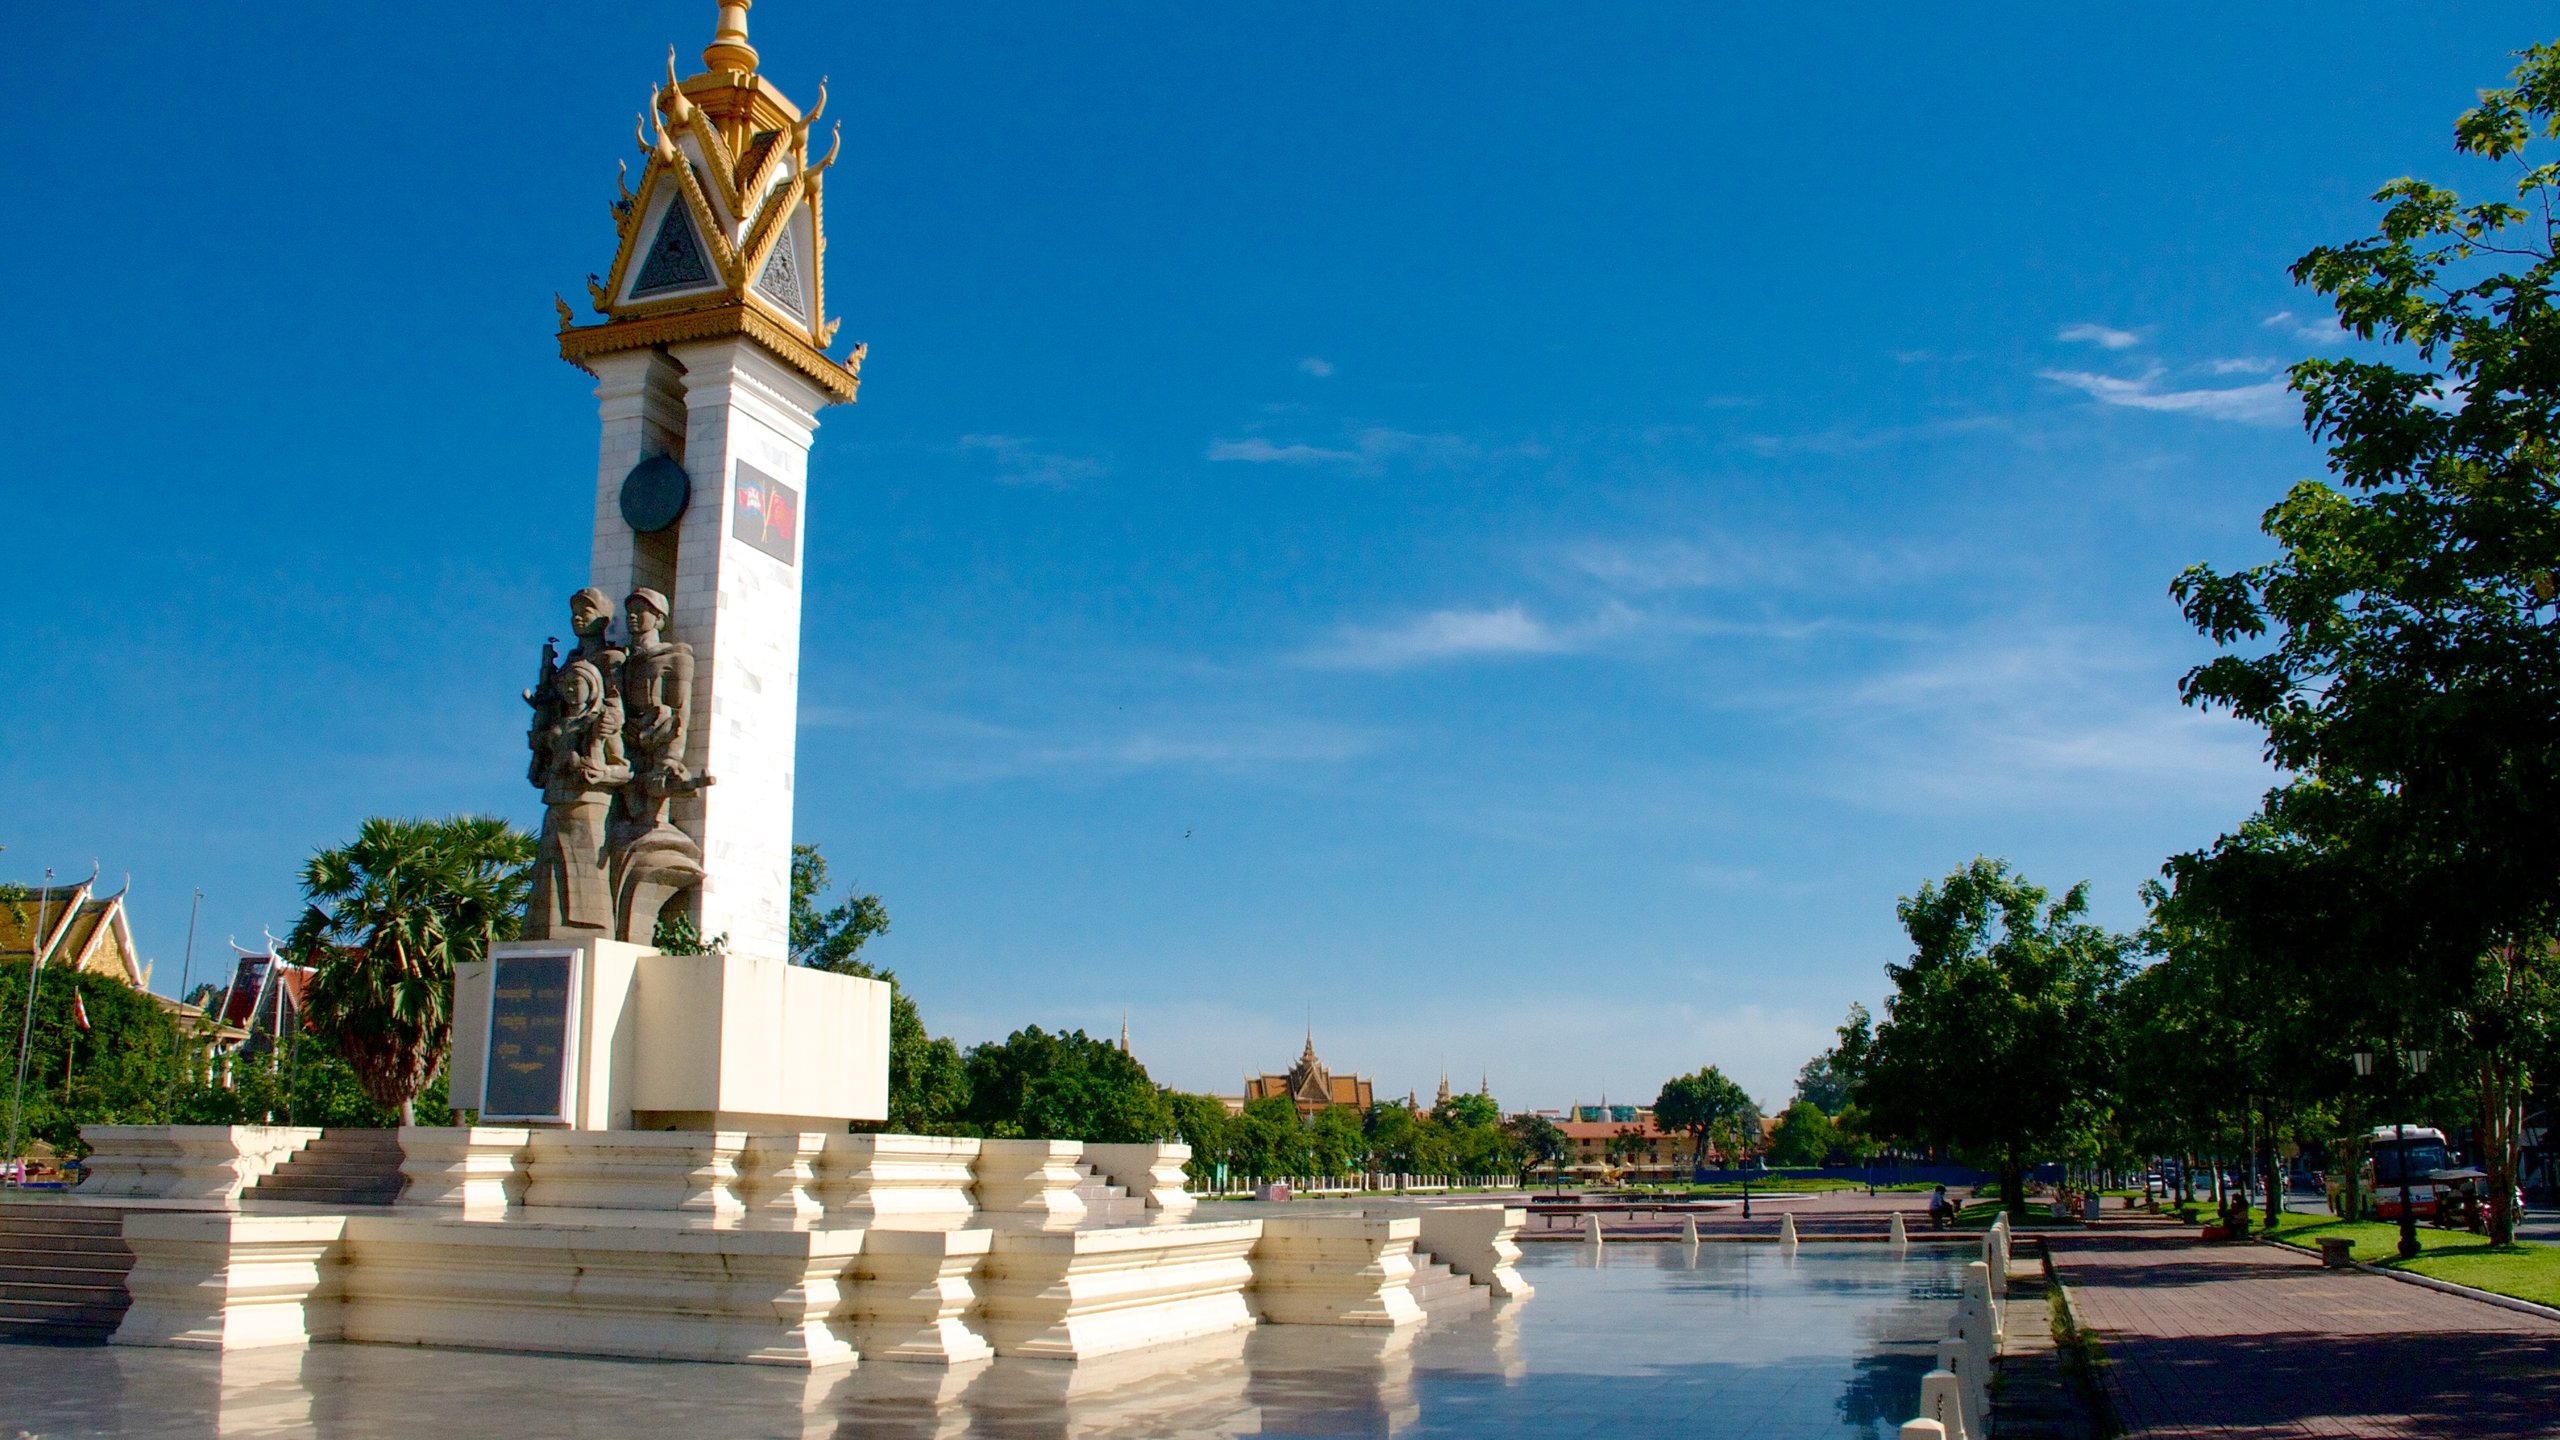 When you walk through Phnom Penh's Wat Botum Park, pause for a moment to investigate this soaring Communist monument.